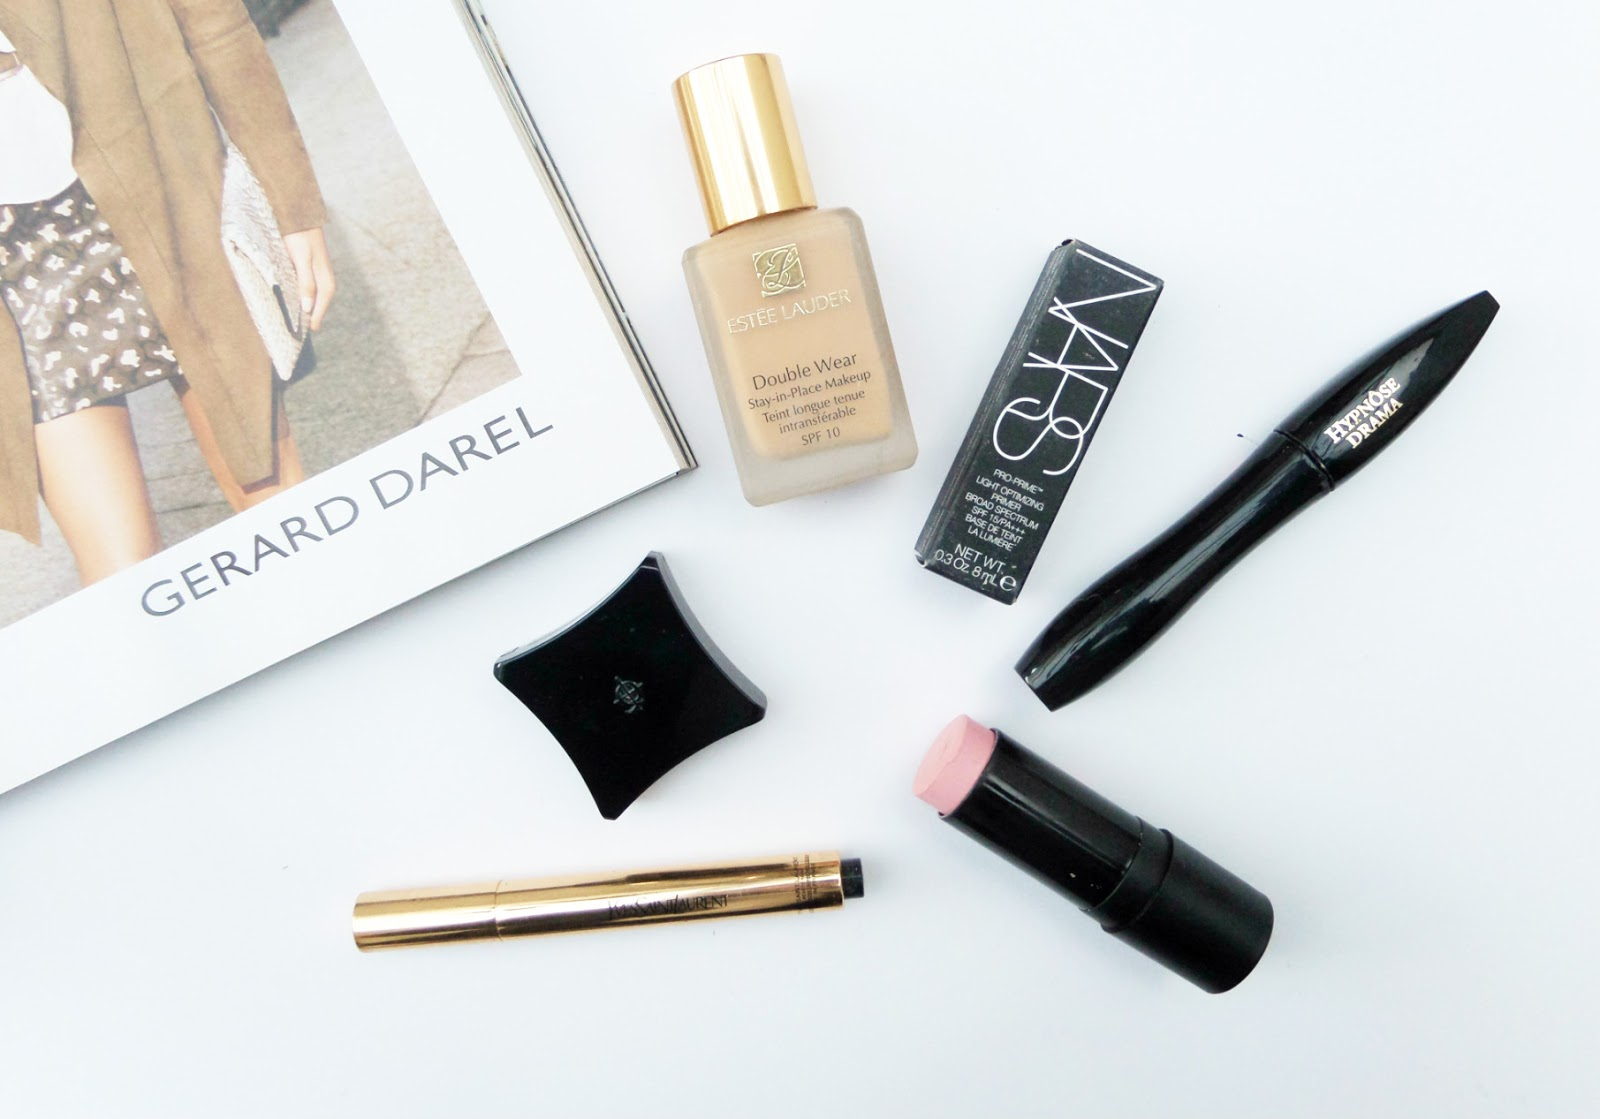 Makeup that can withstand the weather